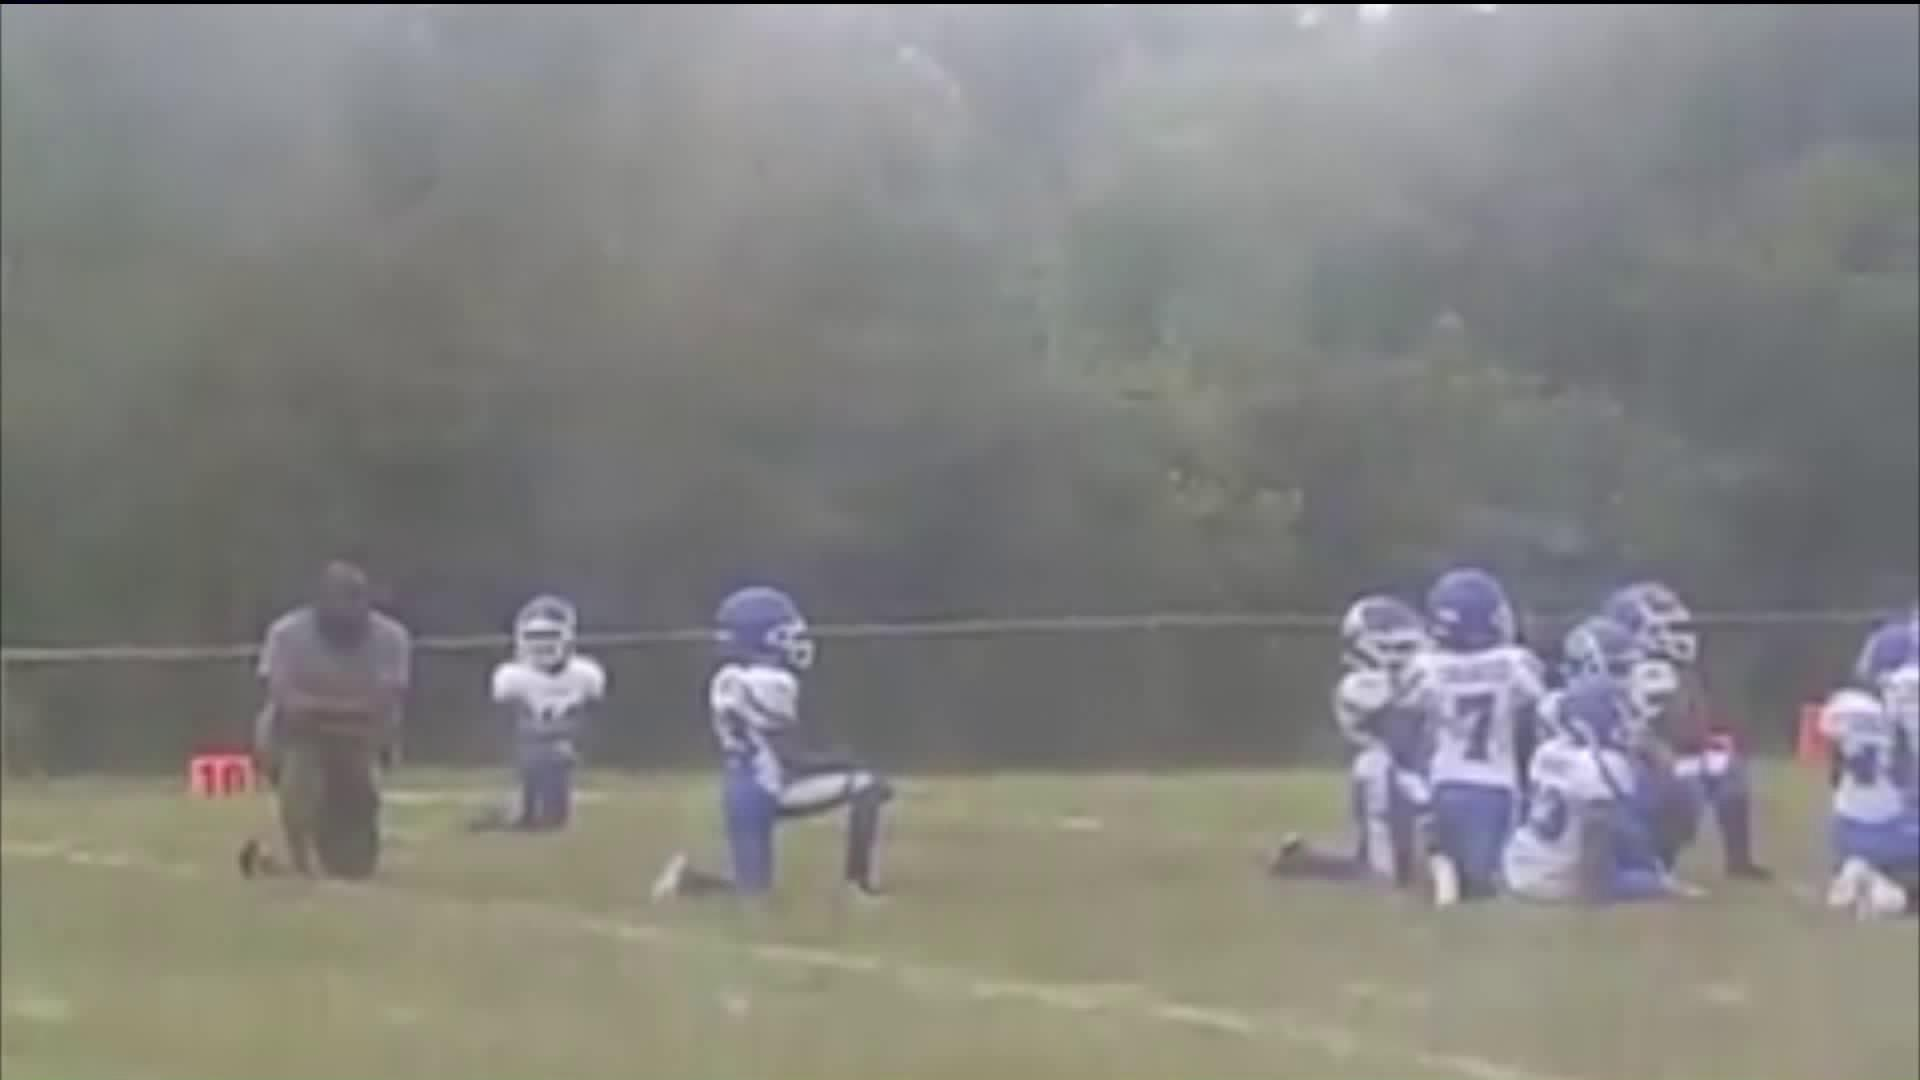 8-year-old football players kneel during national anthem before game